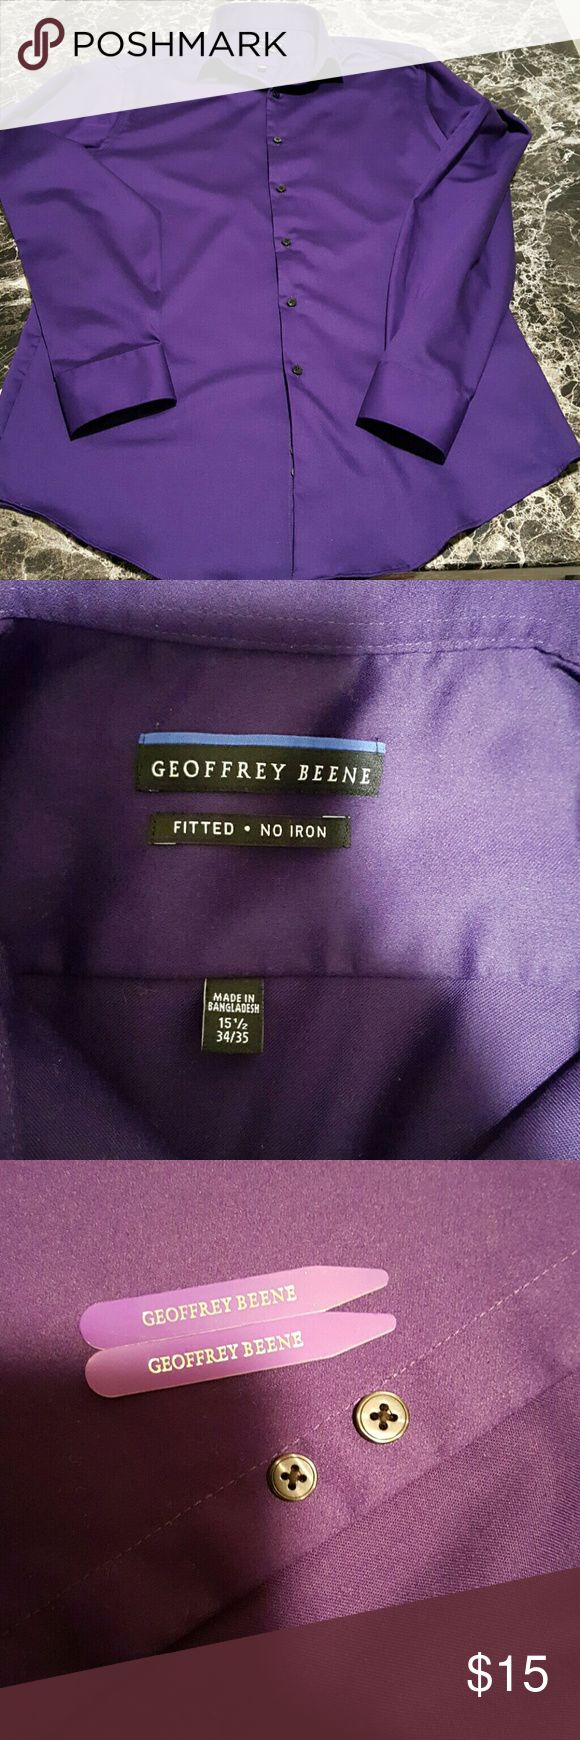 Men's Fitted No Iron Geoffrey Beene Dress Shirt Men's Fitted No Iron Geoffrey Beene Dress Shirt. Purple/Violet  Color. Size 15 1/2 34/35. Gently Used, Looks Like New. Extra Buttons and Collar Stays Included. Geoffrey Beene Shirts Dress Shirts